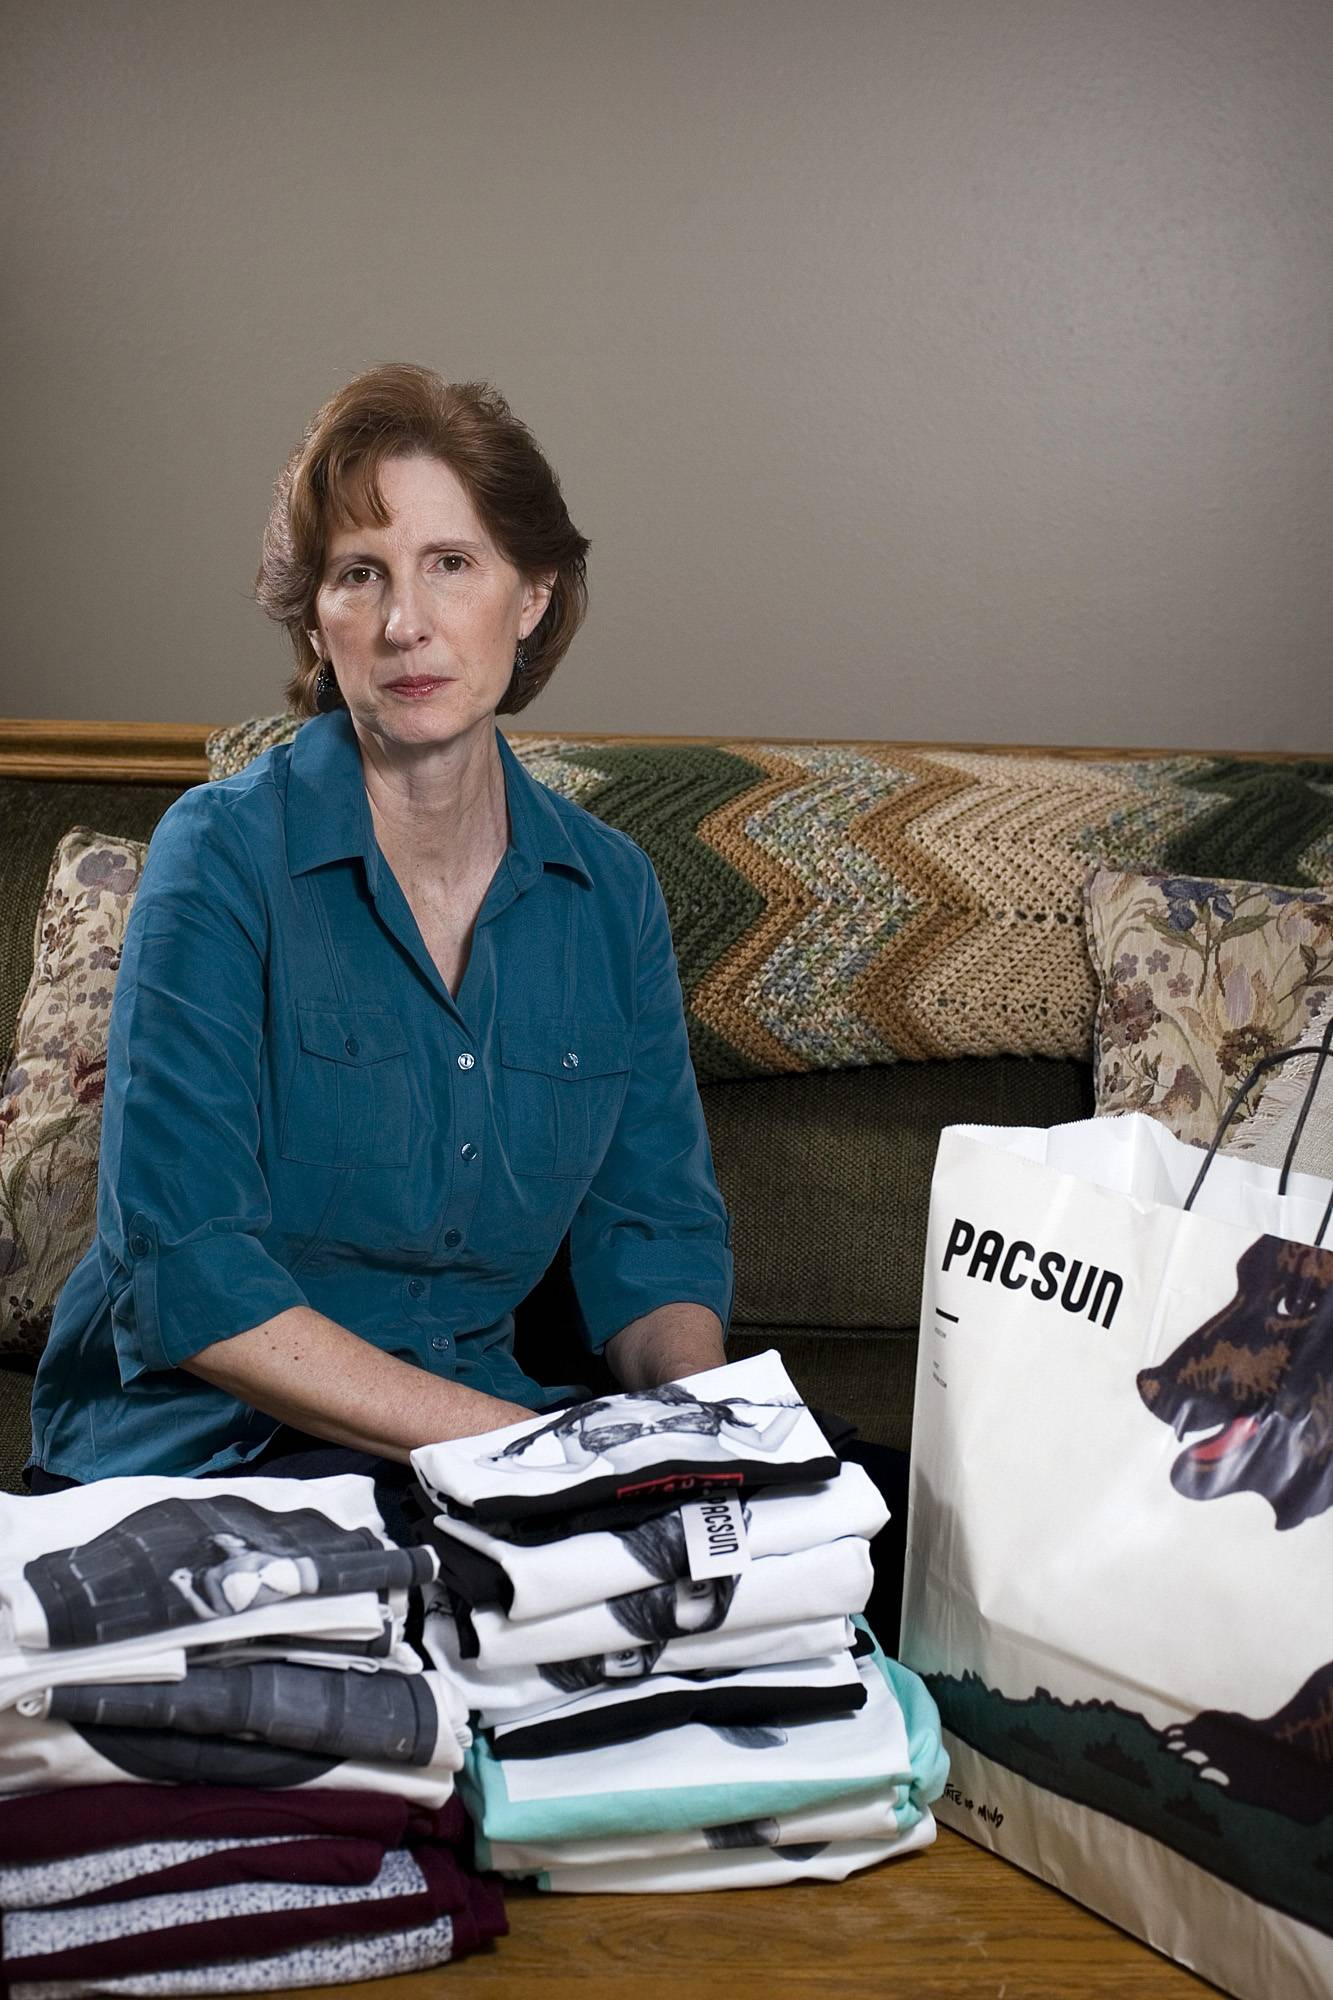 Judy Cox sits Monday next to a stack of T-shirts with what she believes are pornographic designs.